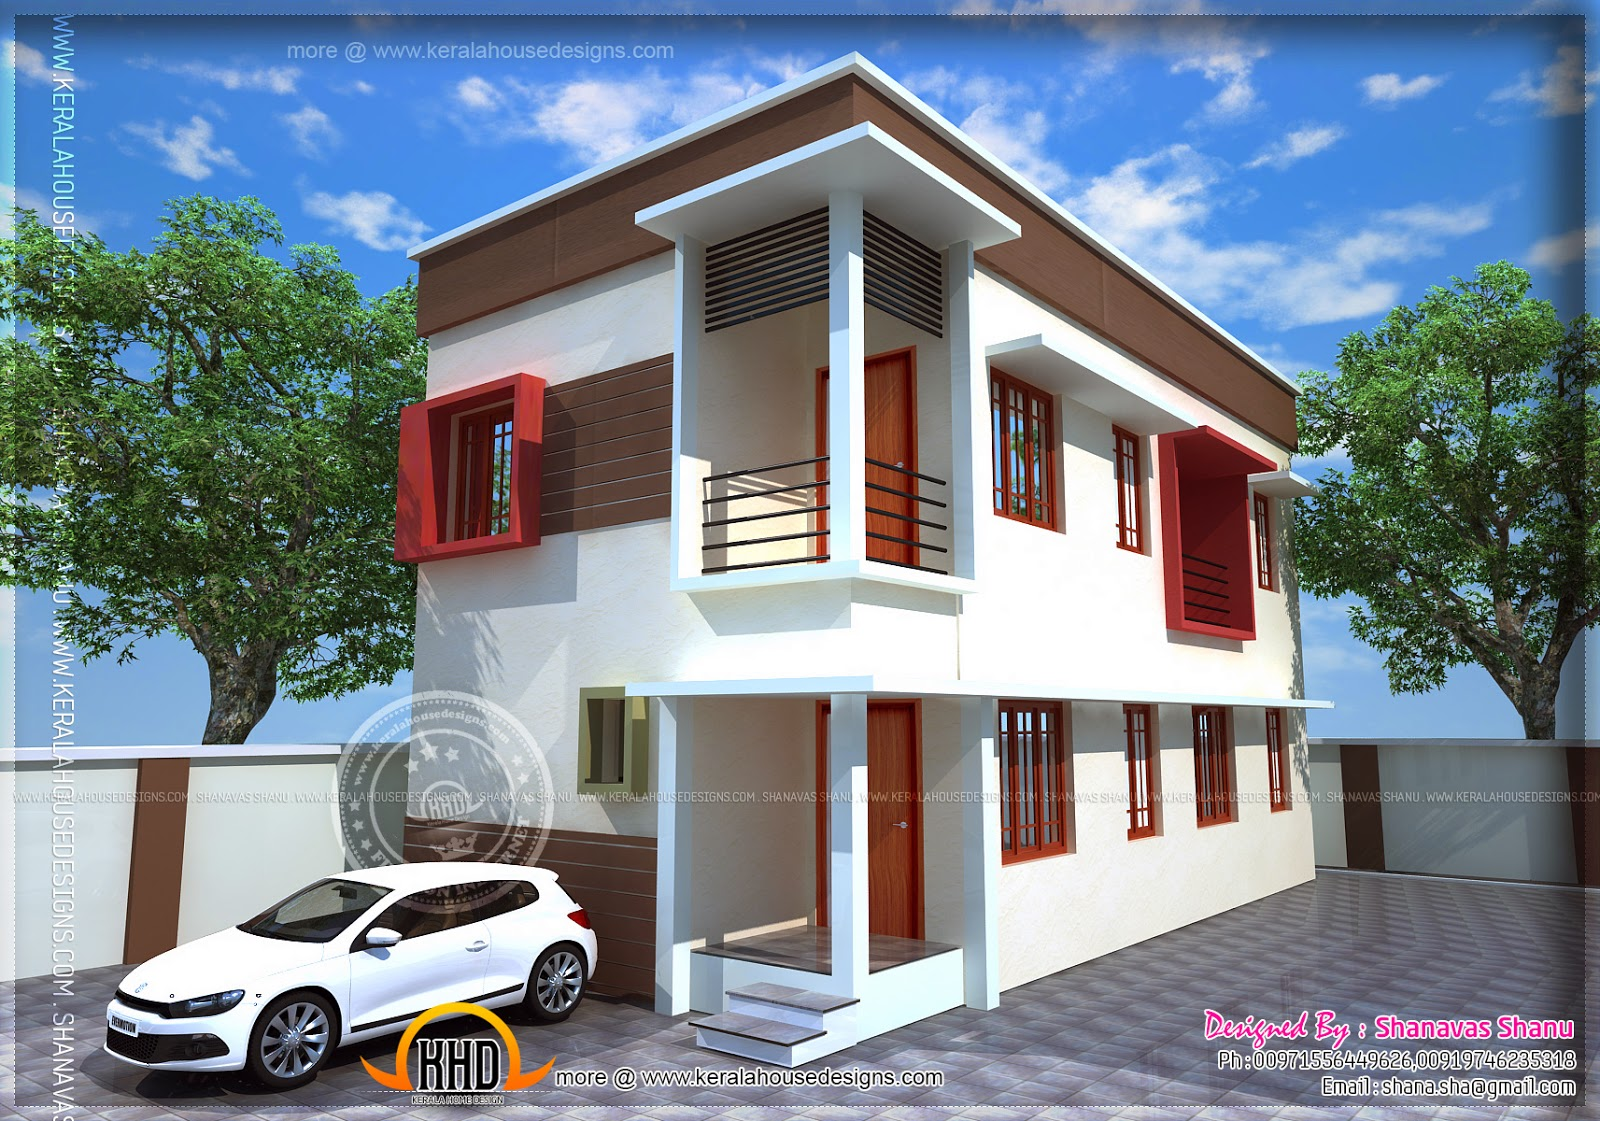 Small plot villa in cents of land kerala home for Home designs small